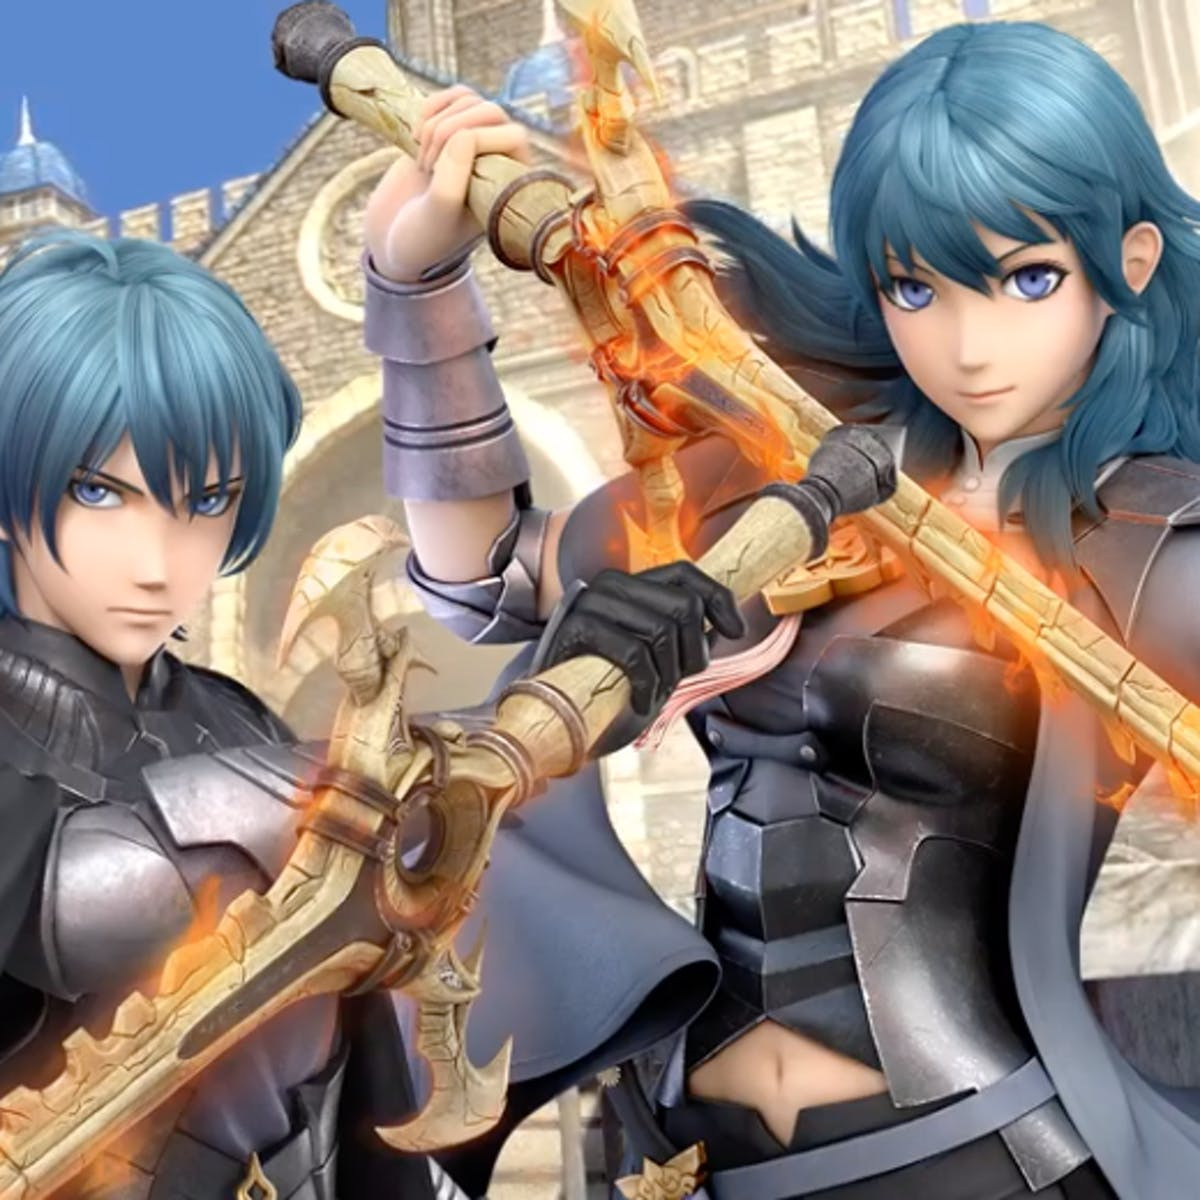 'Smash Bros. Ultimate DLC 5 announced: It's Byleth from 'Fire Emblem: Three Houses'!